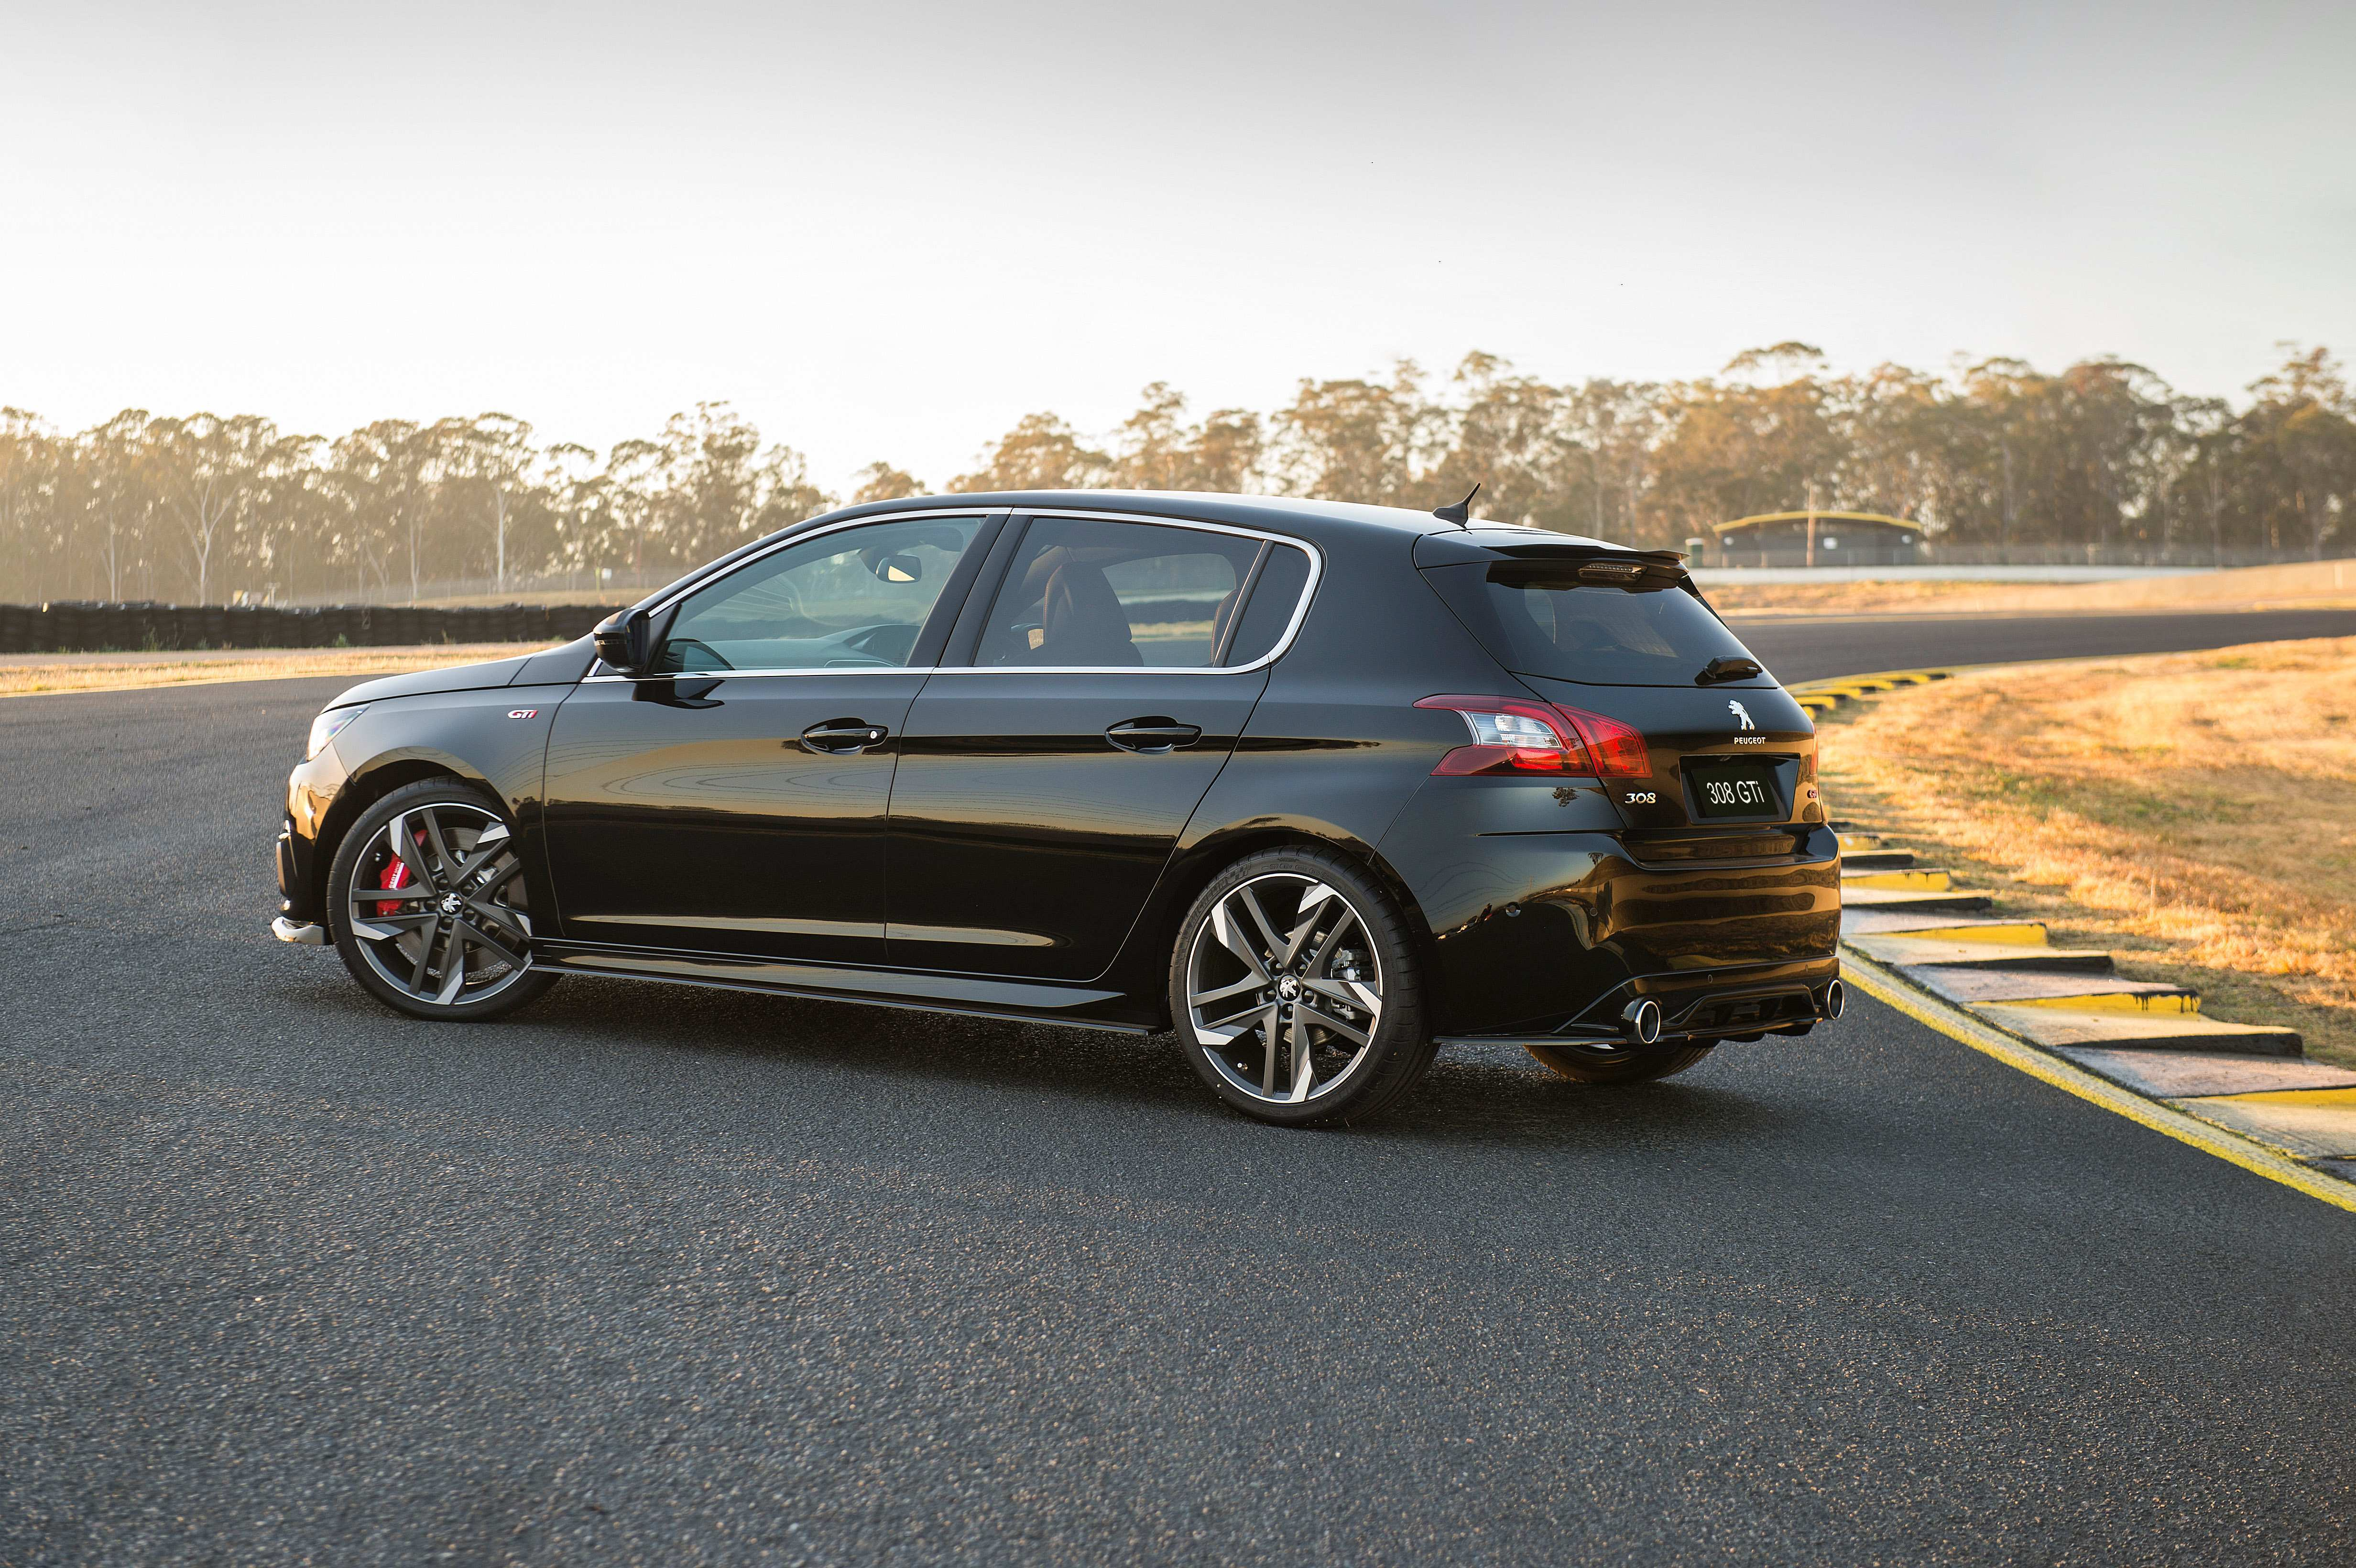 64 The Best 2019 Peugeot 308 Gti Performance And New Engine